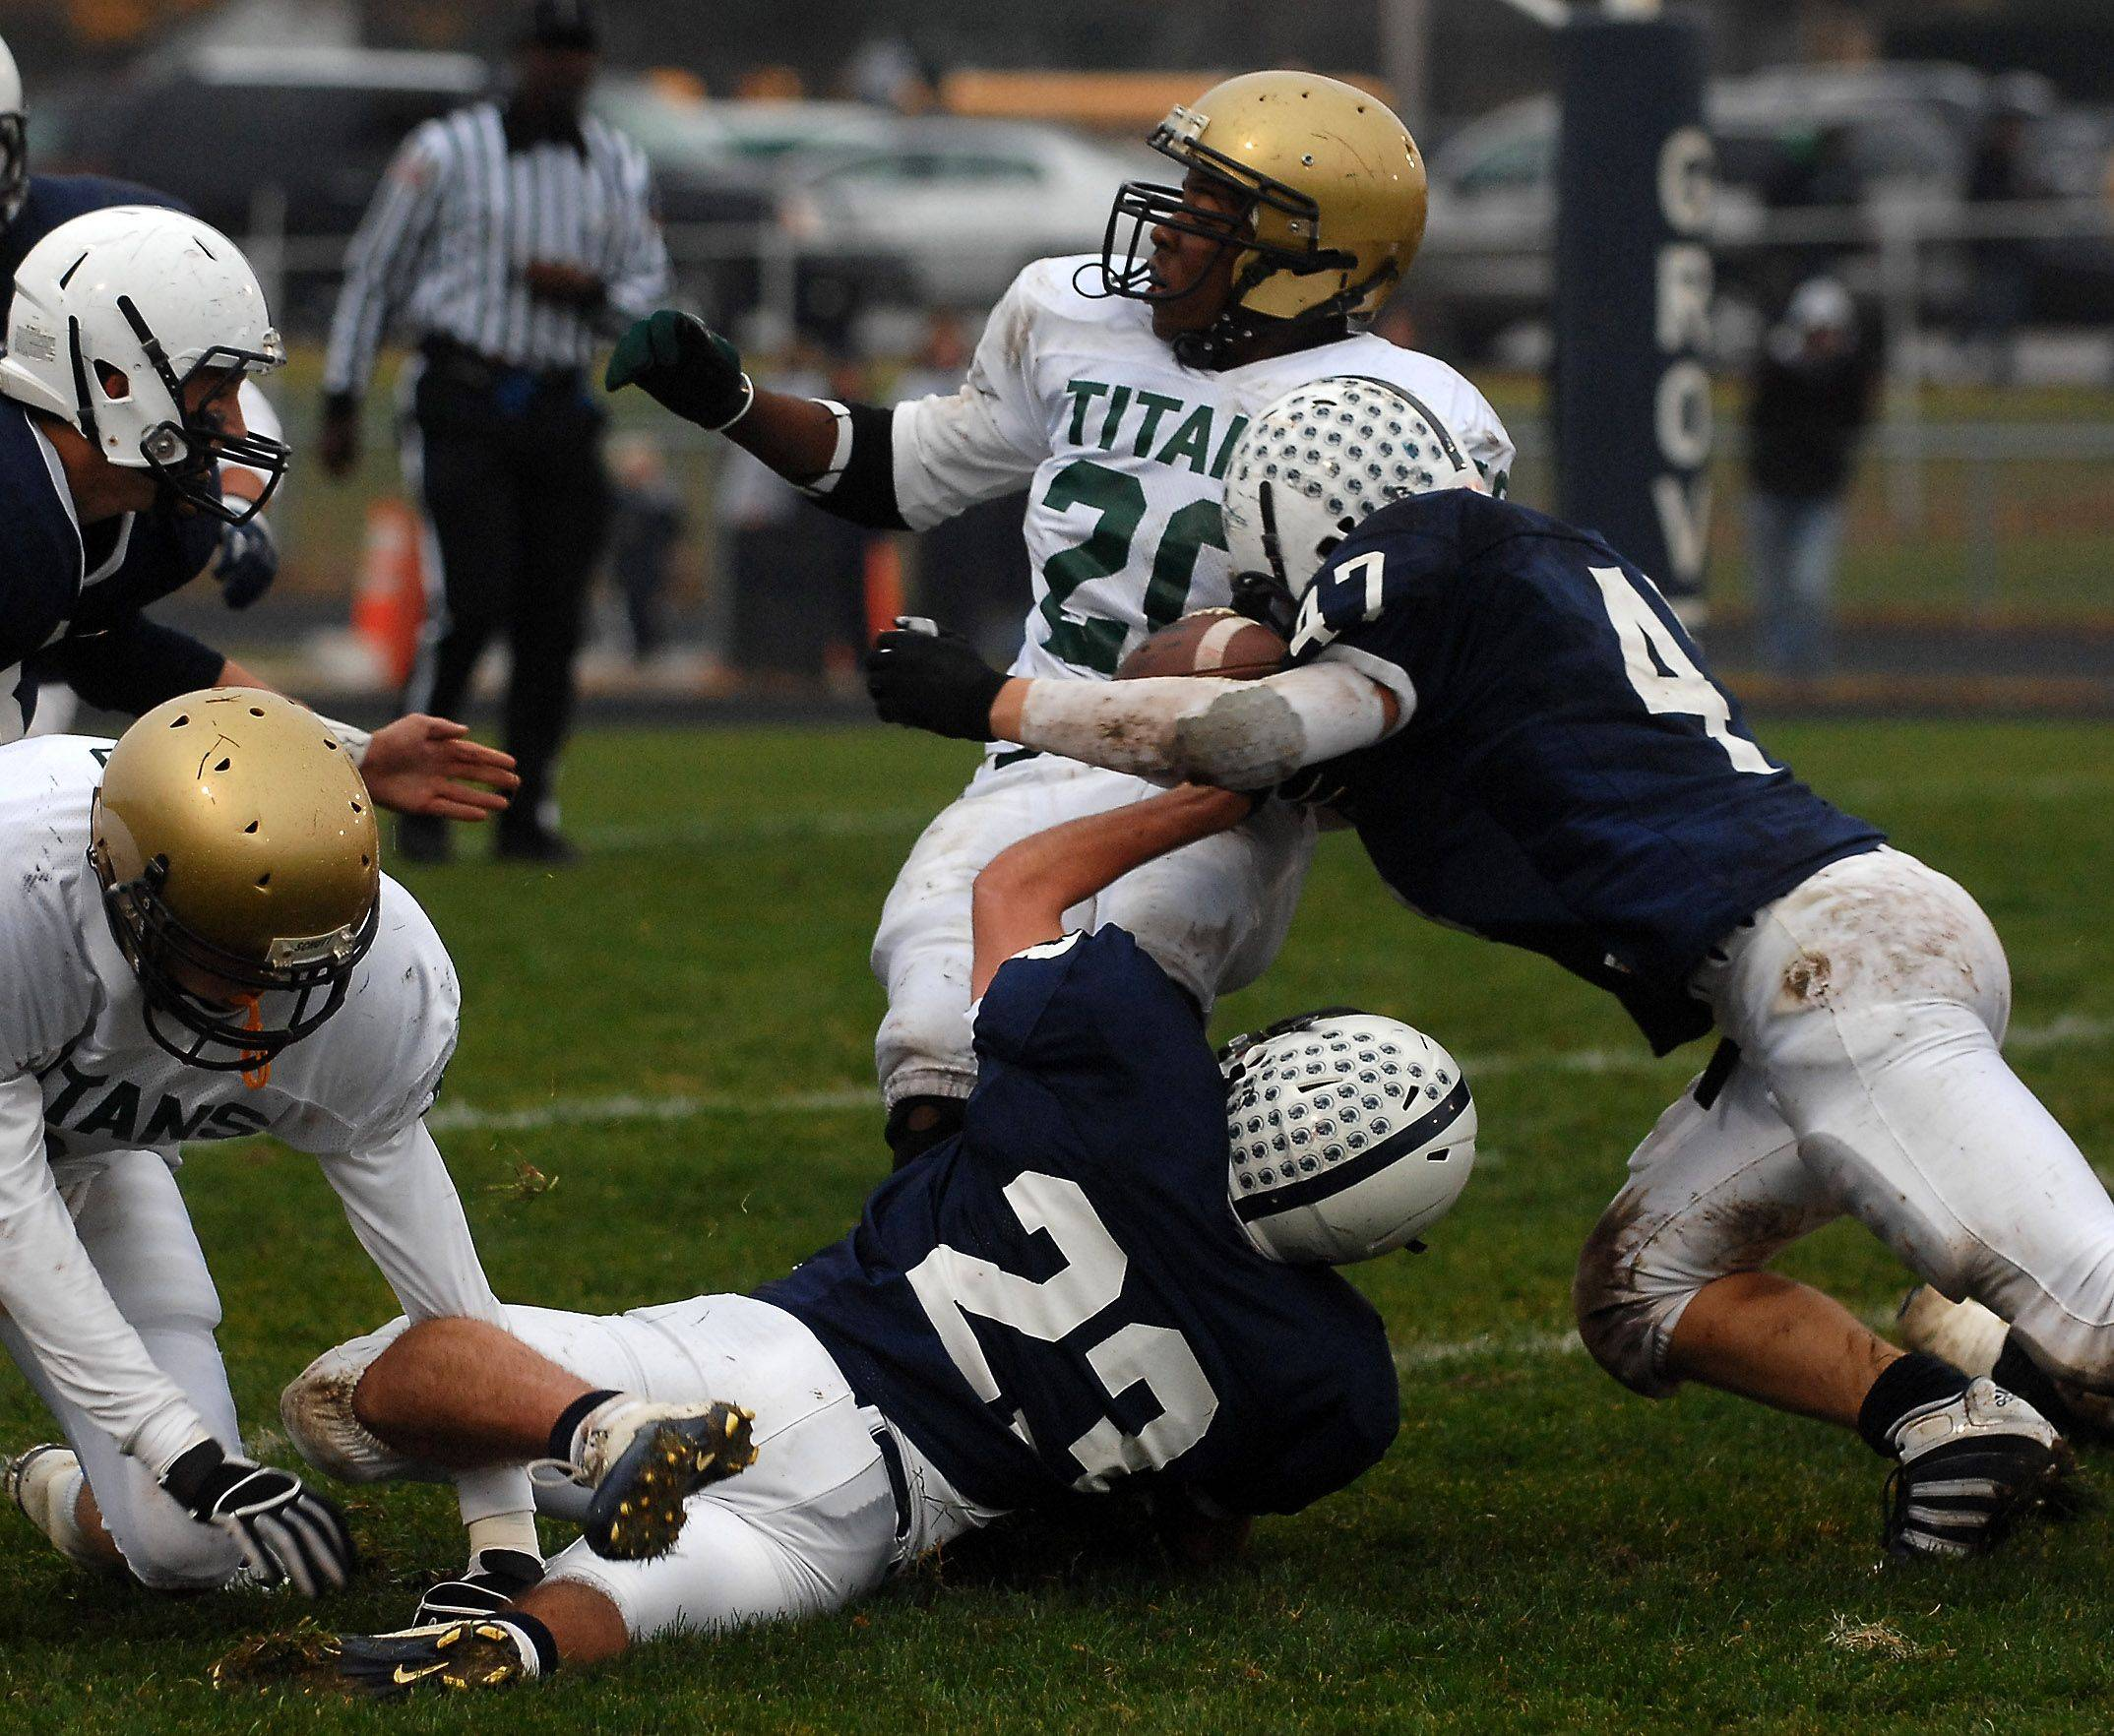 Cary-Grove's Max Kersten (47) causes a fumble by Rockford Boylan's Tyreis Thomas that was recovered by the Trojans during Saturday's playoff game in Cary.